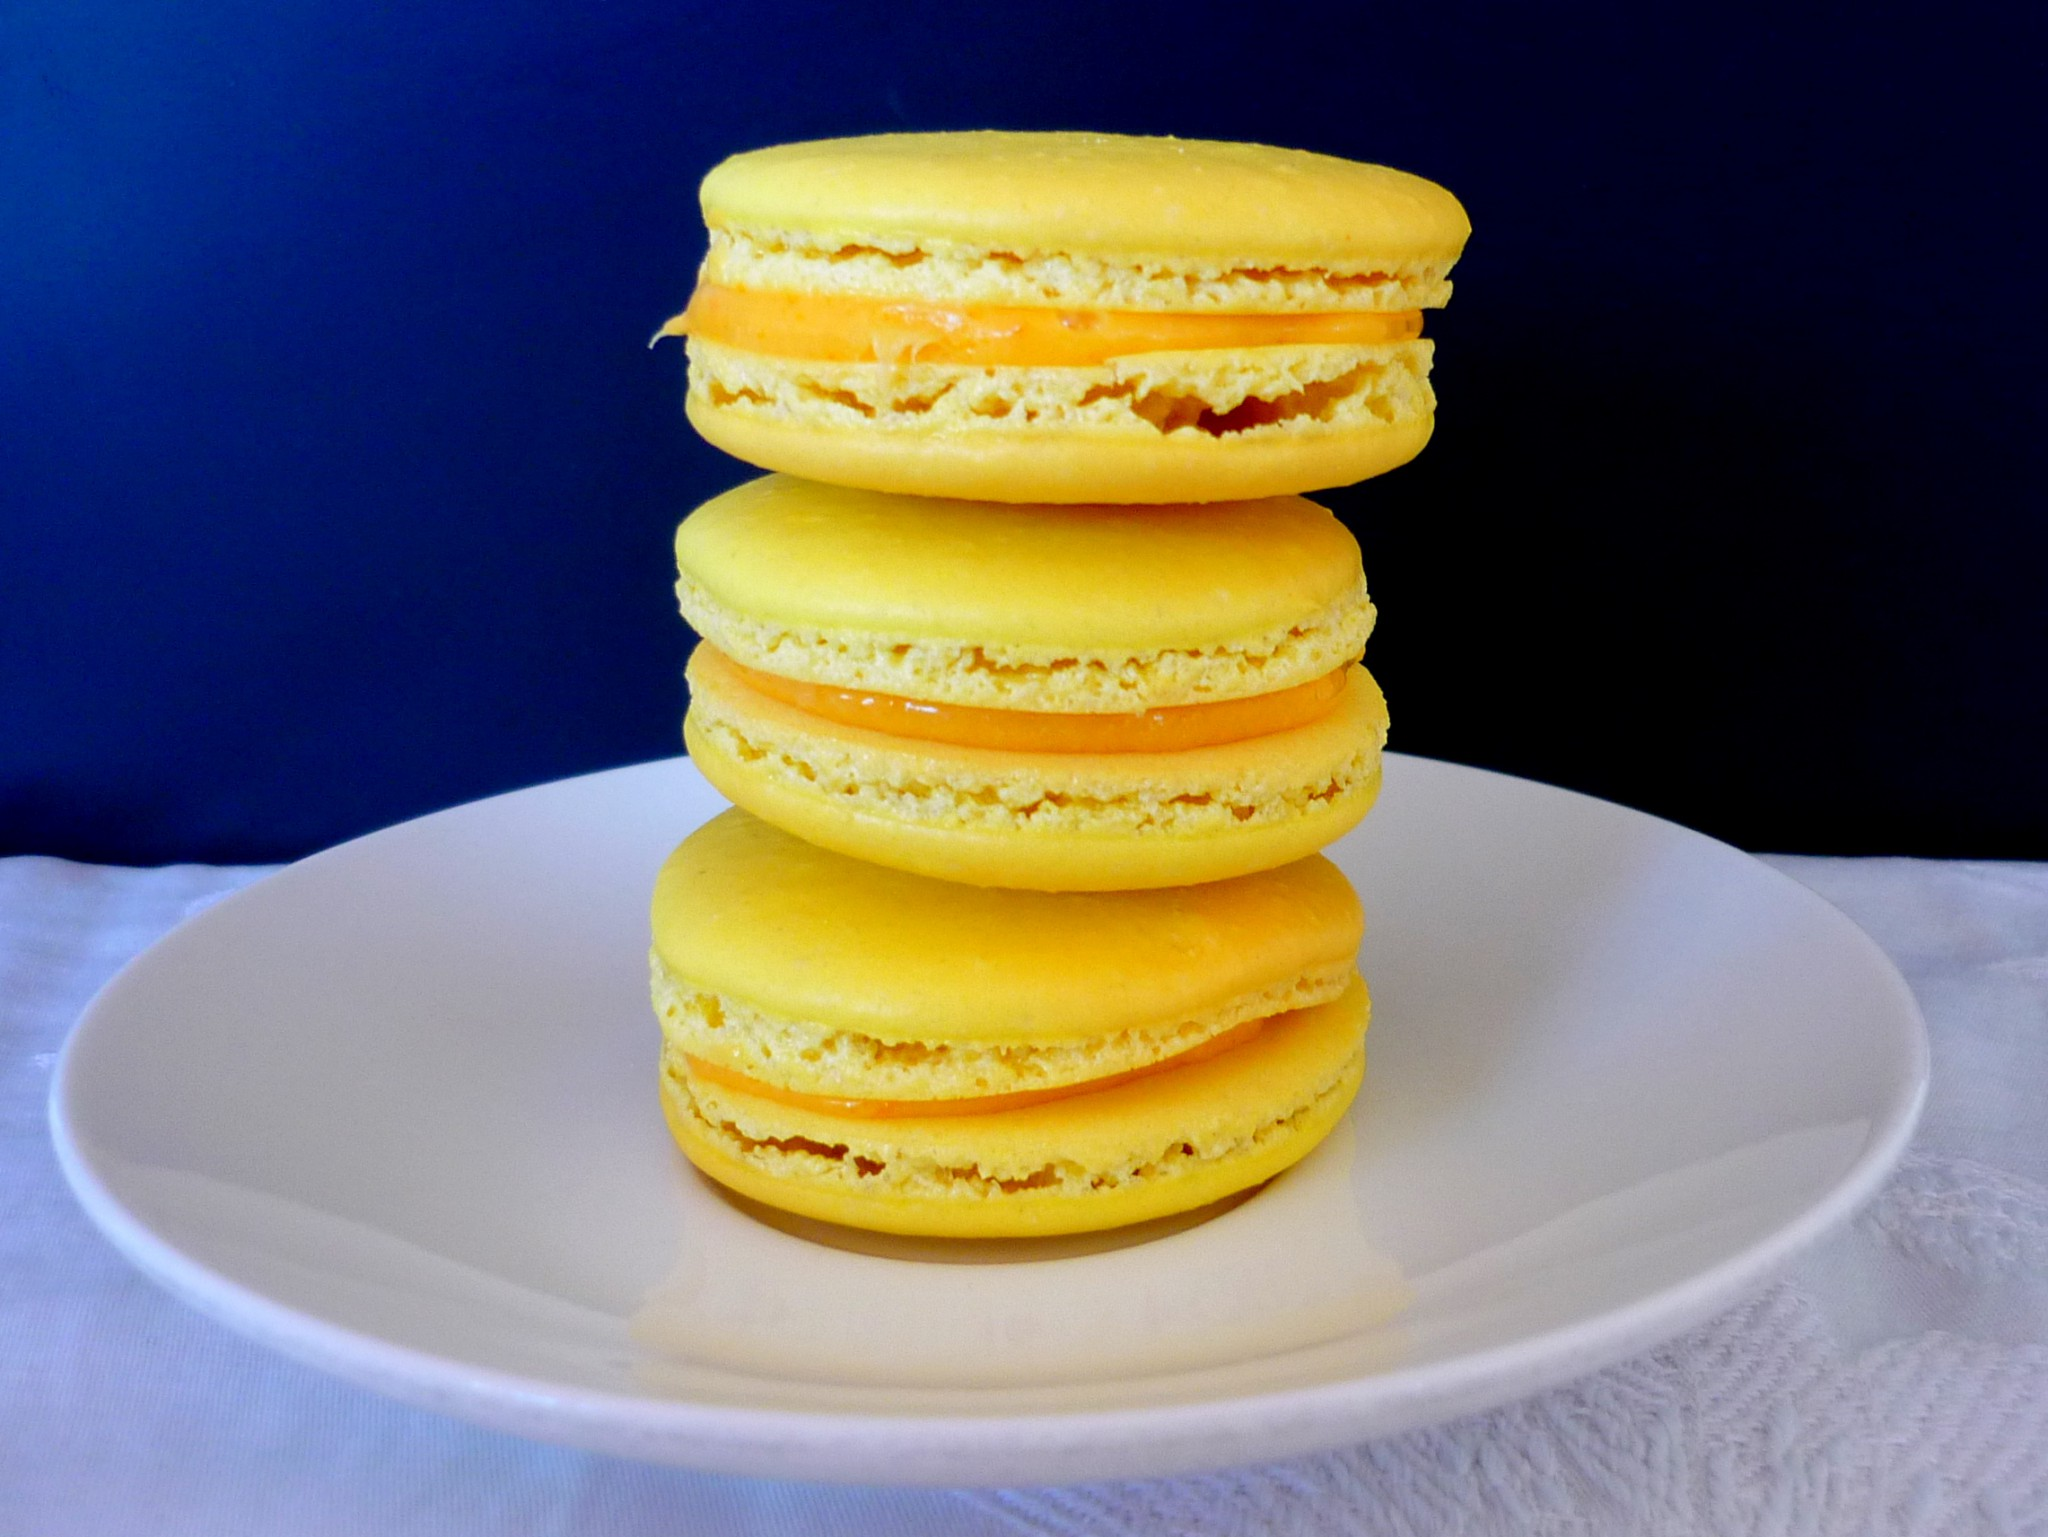 Lemon-flavoured Paris-style macarons © French Moments